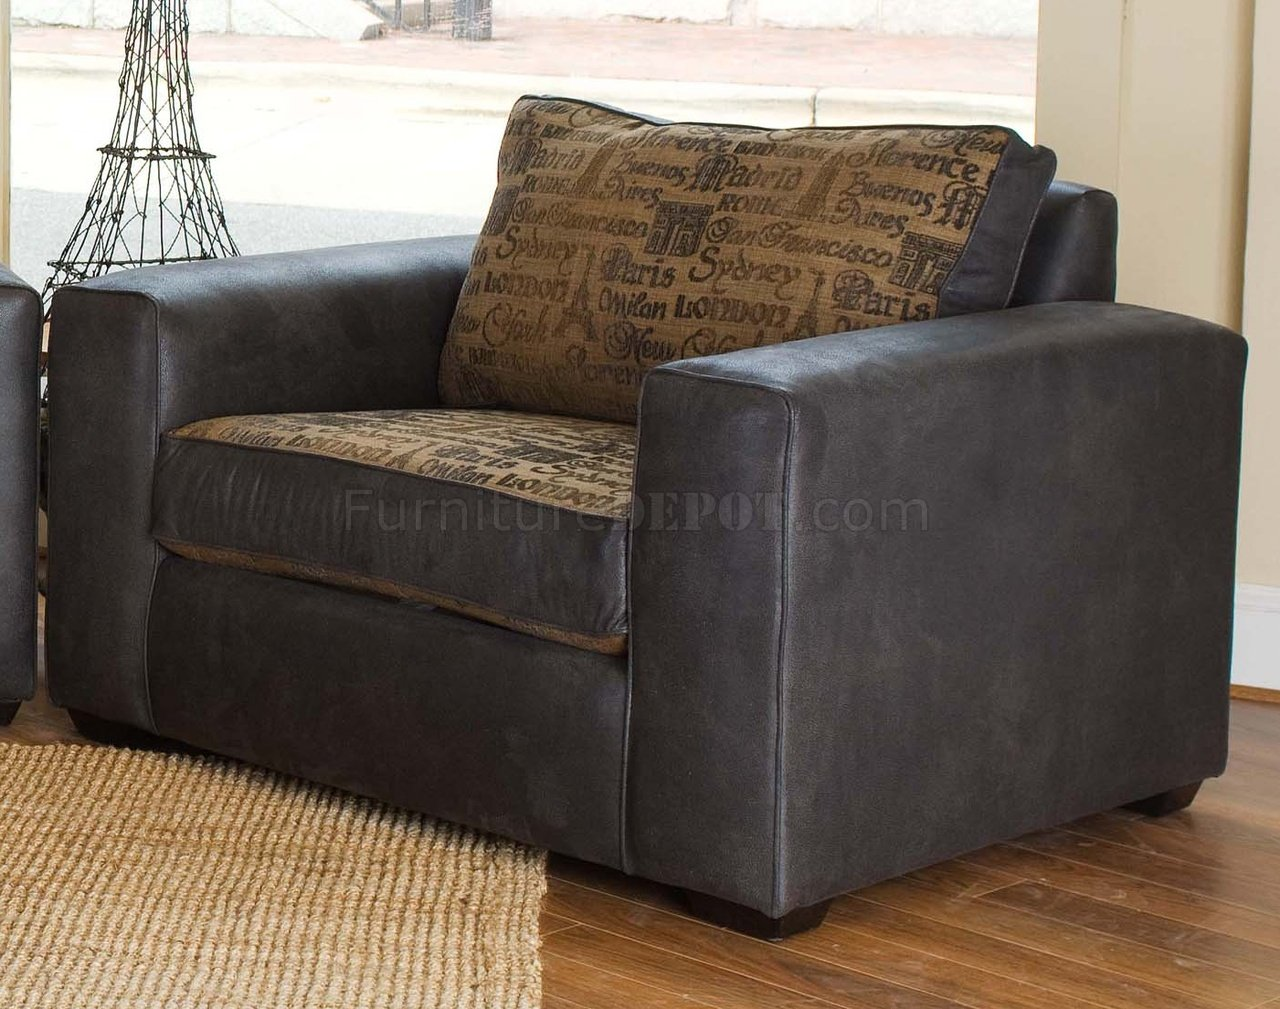 fabric leather modern living room sofa large chair set